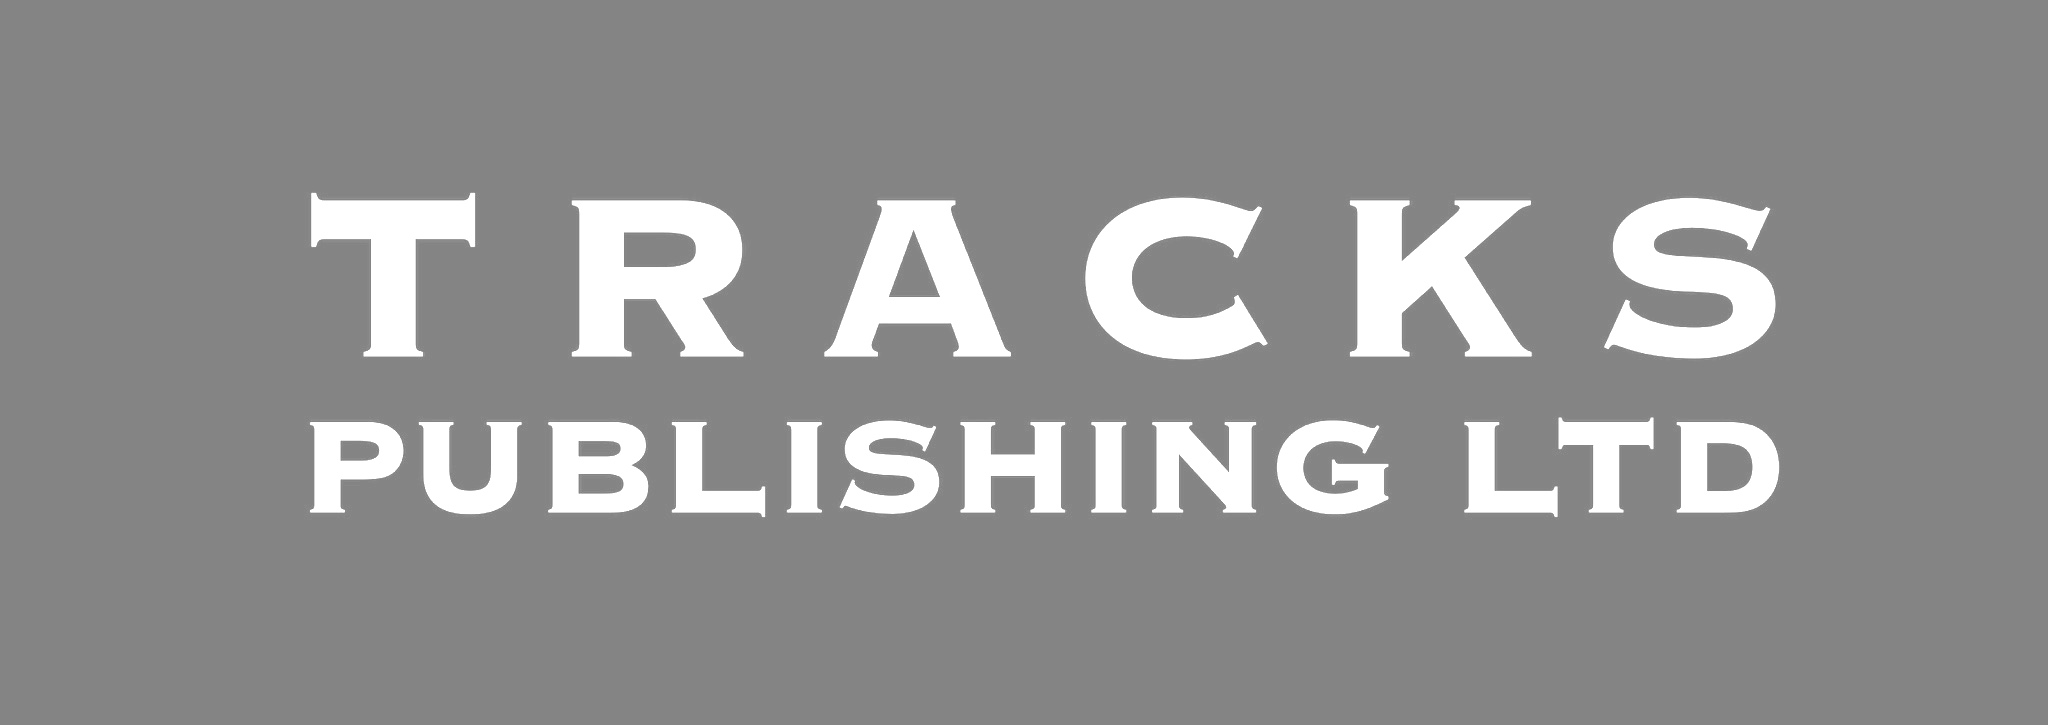 Tracks Publishing